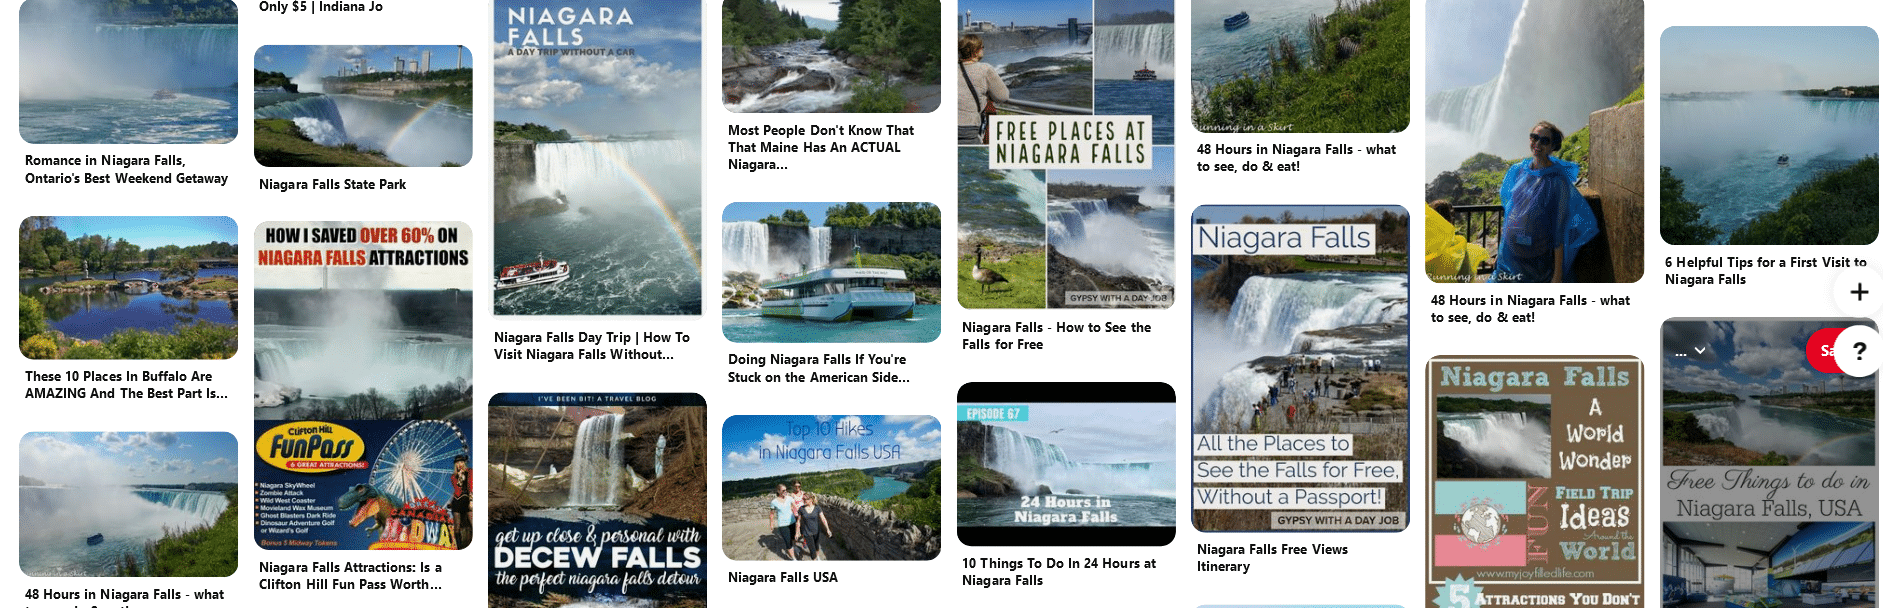 Niagara Falls: What You Don't Want to Miss